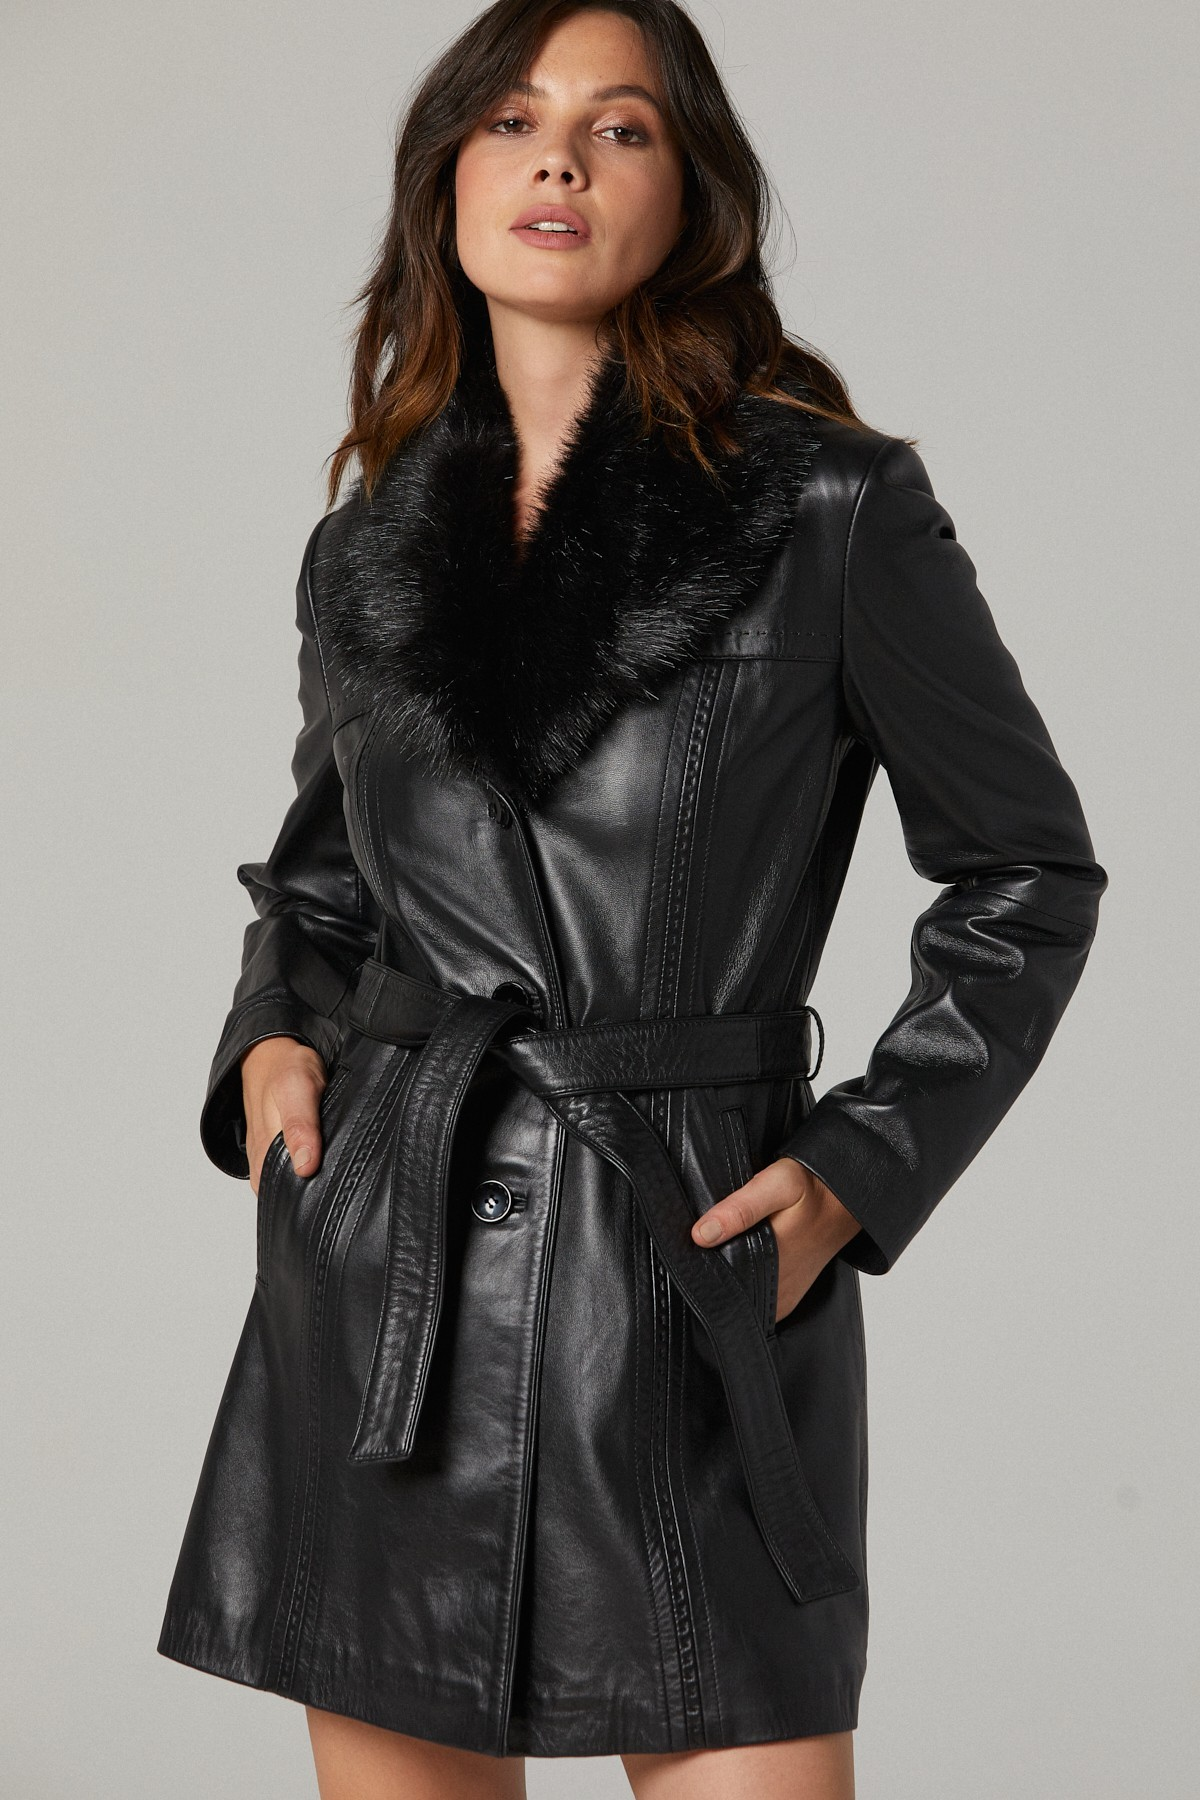 Leather Jacket Brands Womens